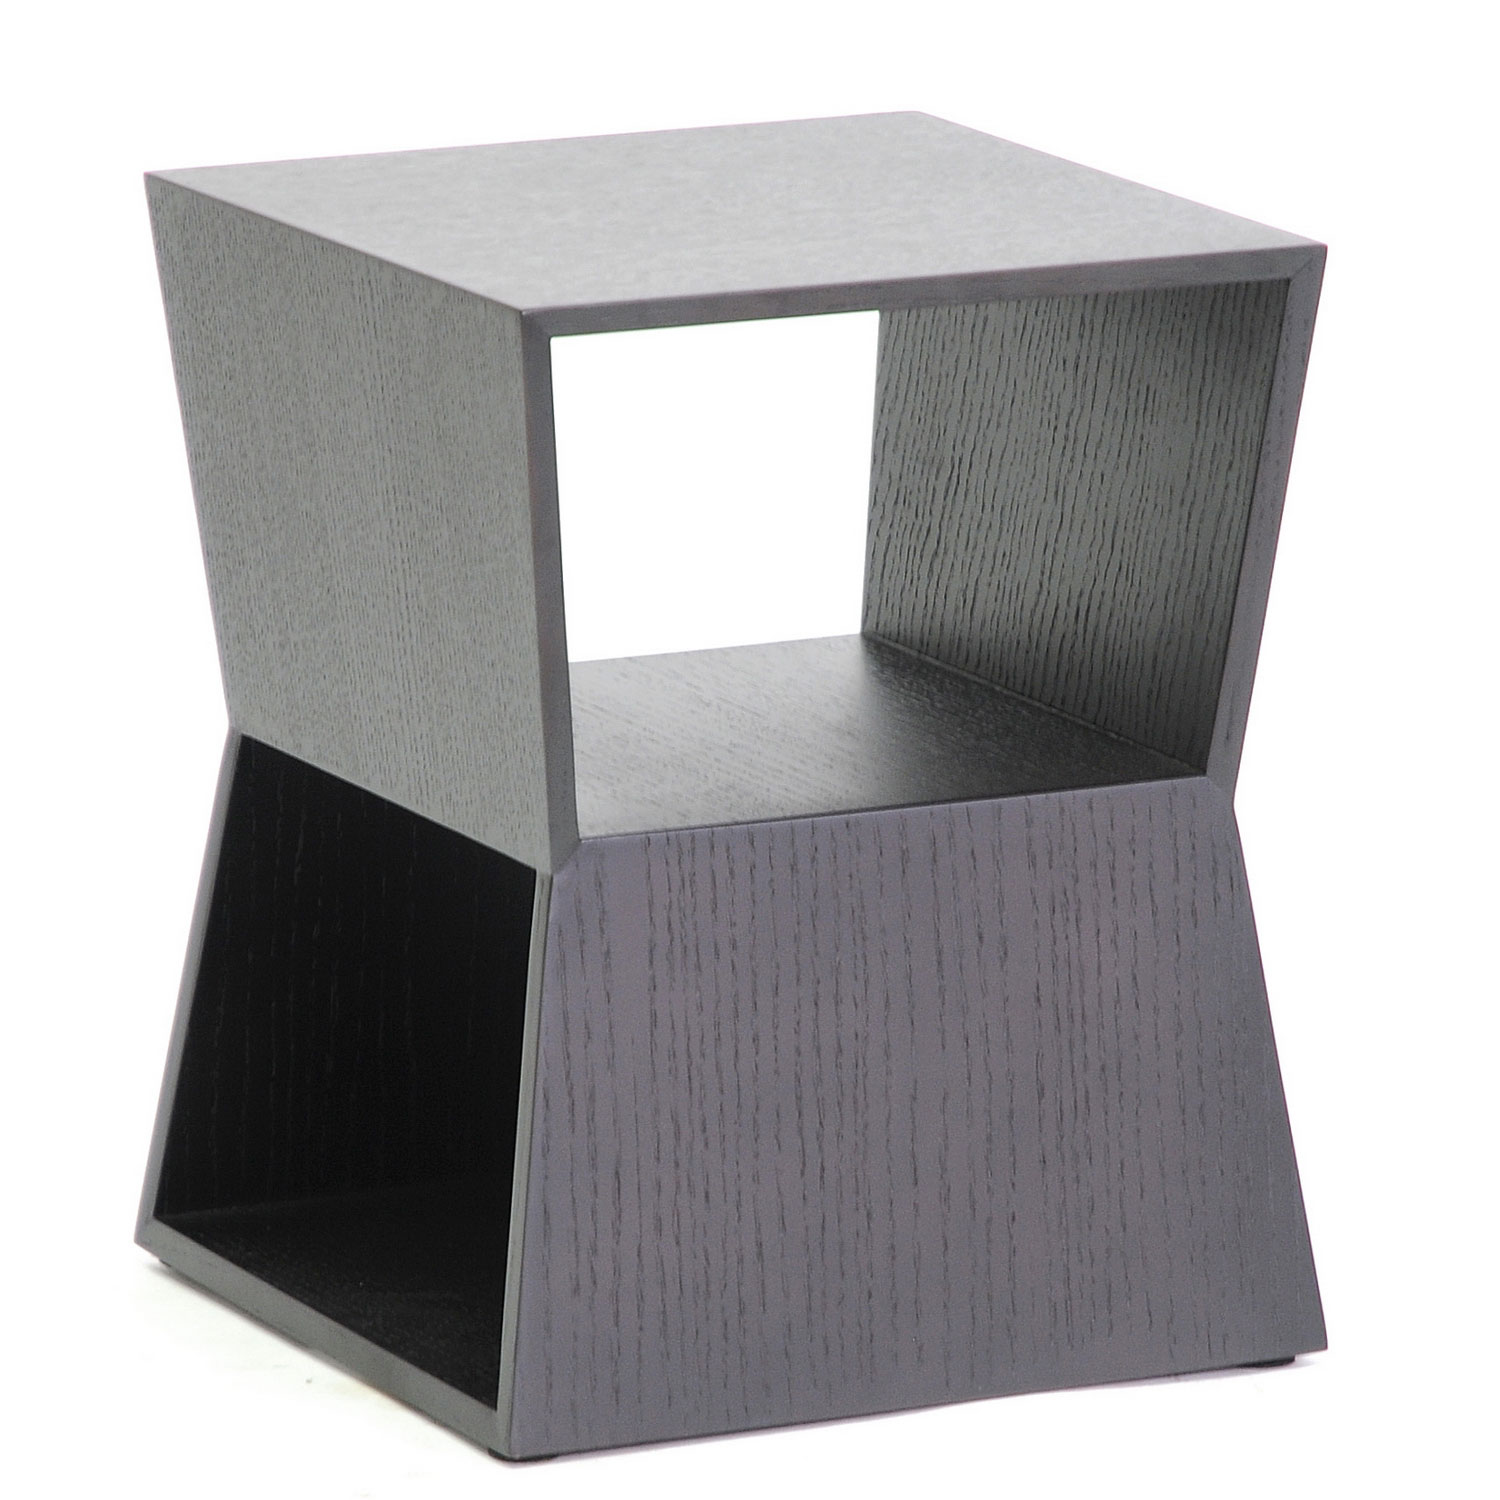 Baxton Studio Marche Black Wood Modern End Table By Wholesale Interiors  Price: $173.99